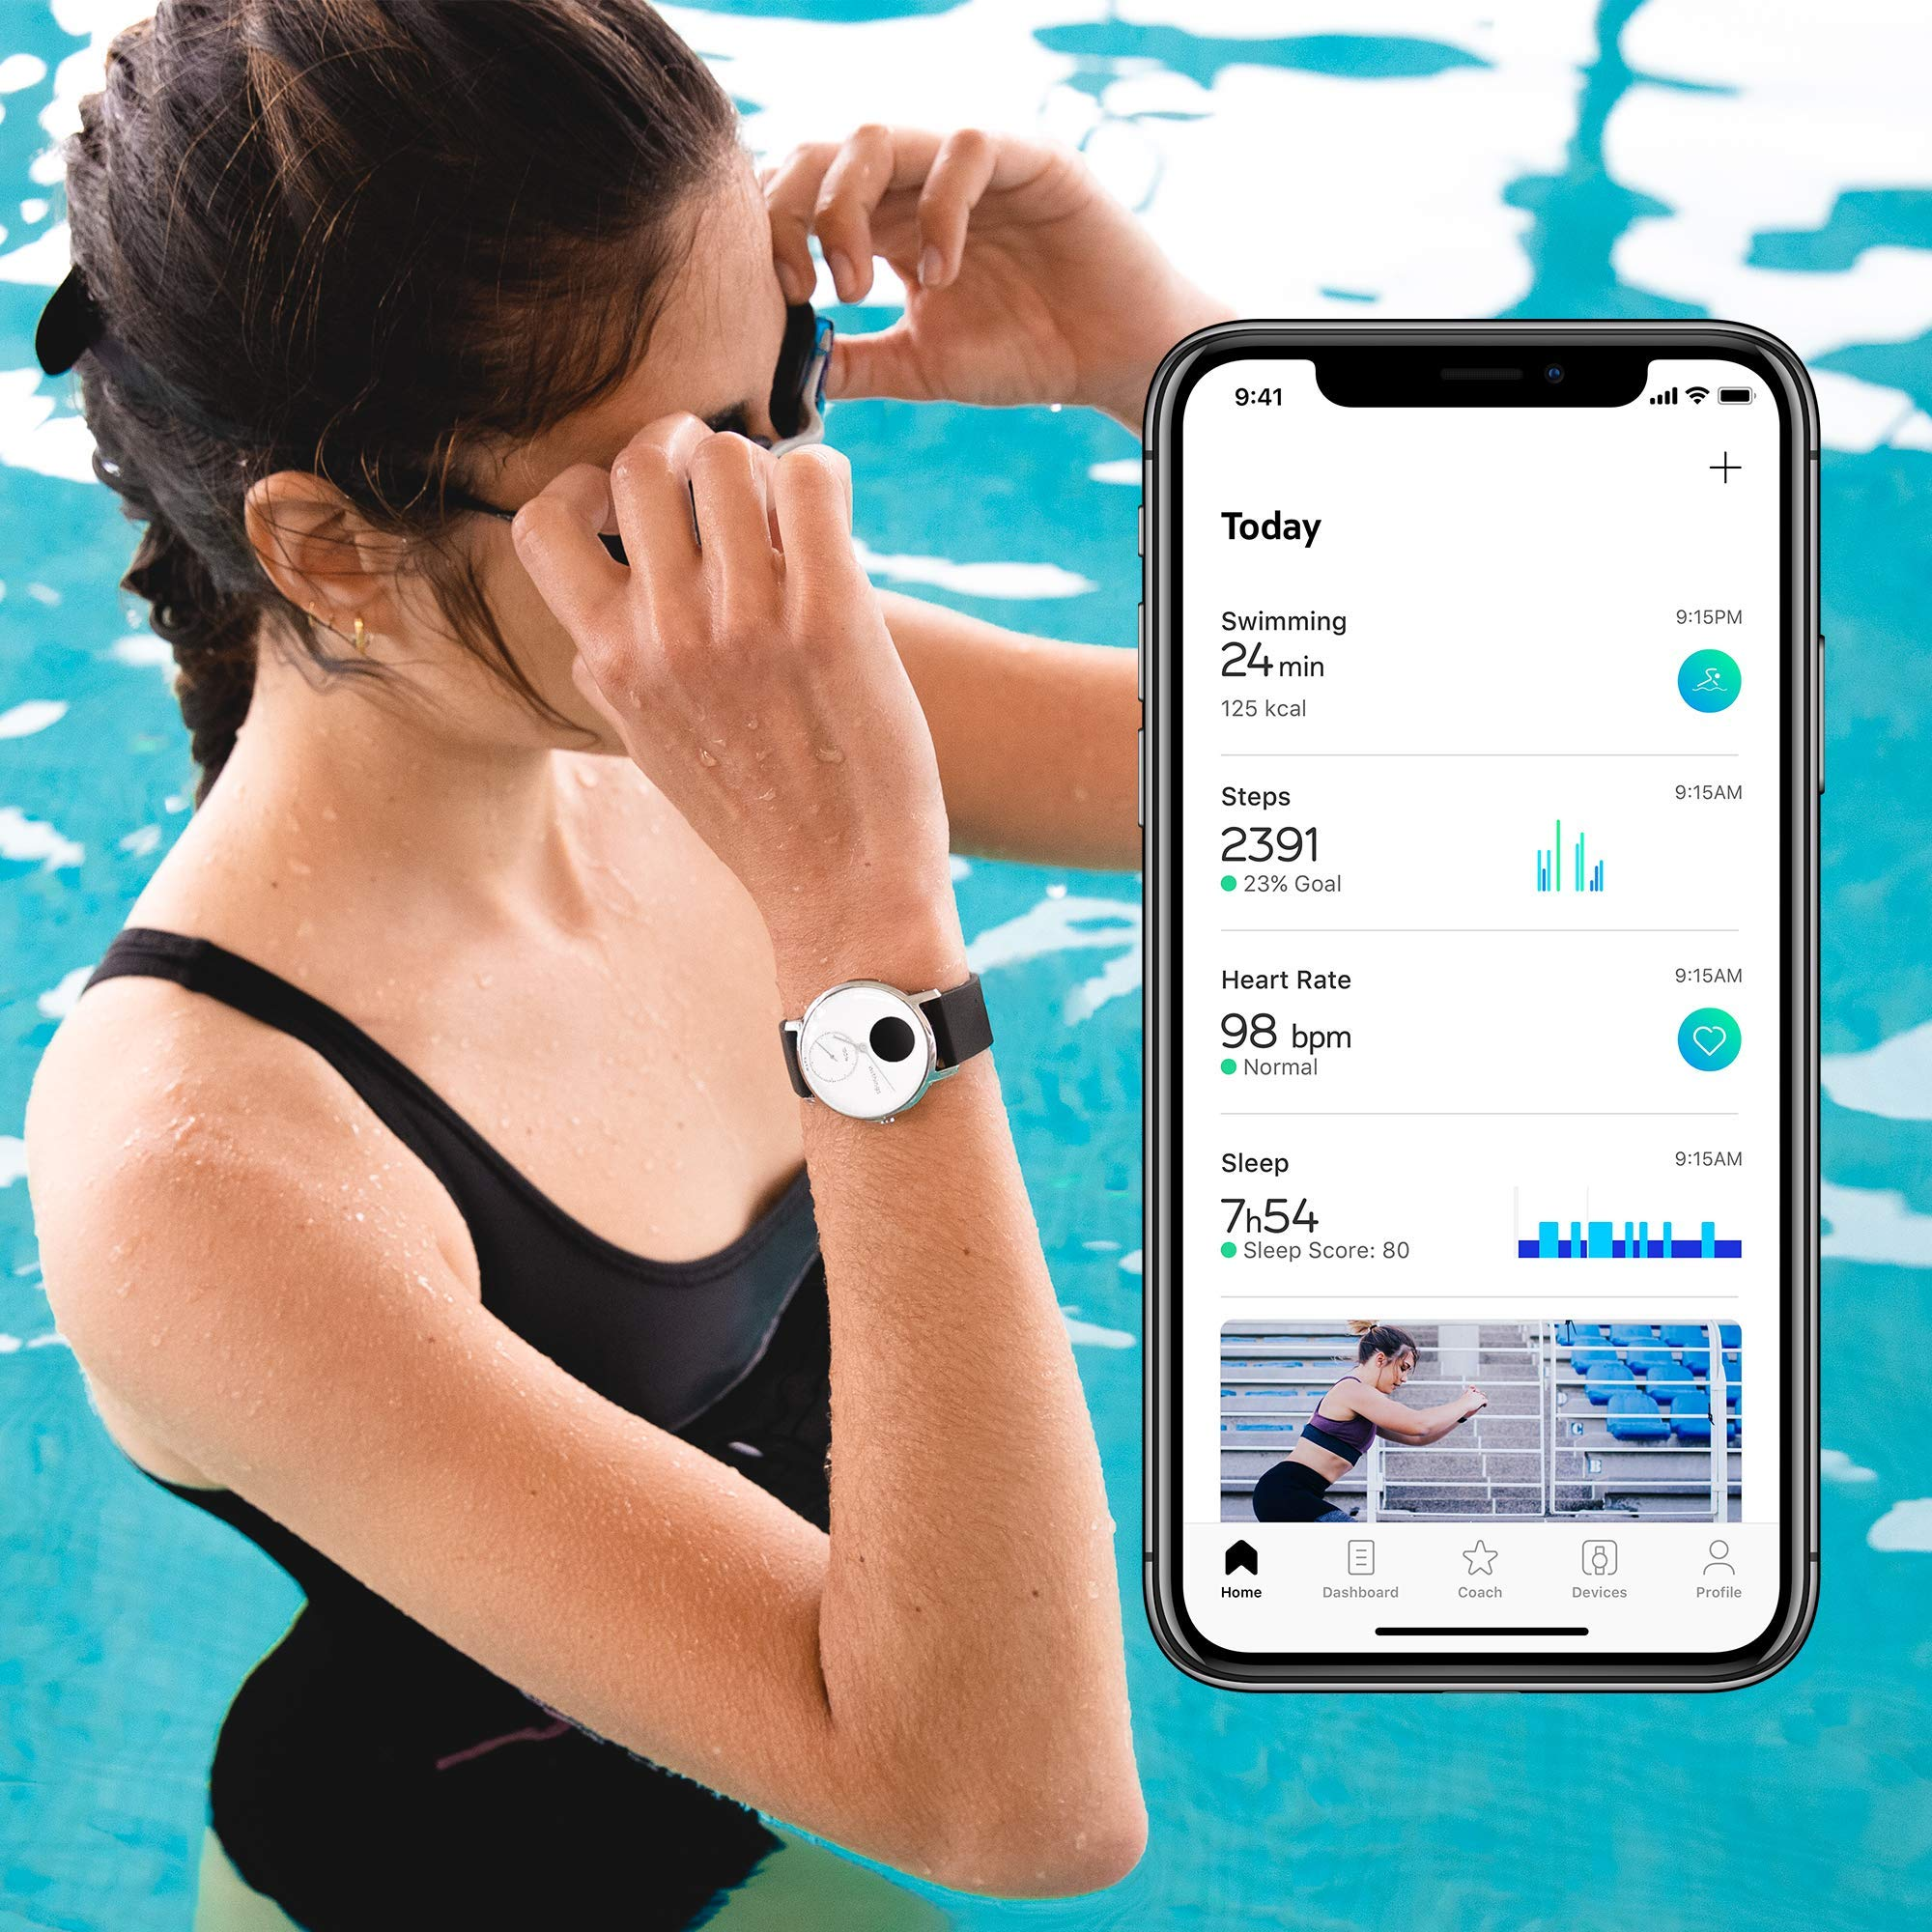 Withings / Nokia | Steel HR Hybrid Smartwatch - Activity Tracker with Connected GPS, Heart Rate Monitor, Sleep Monitor, Water Resistant Smart Watch with 25-day battery life (Renewed) by Withings (Image #6)